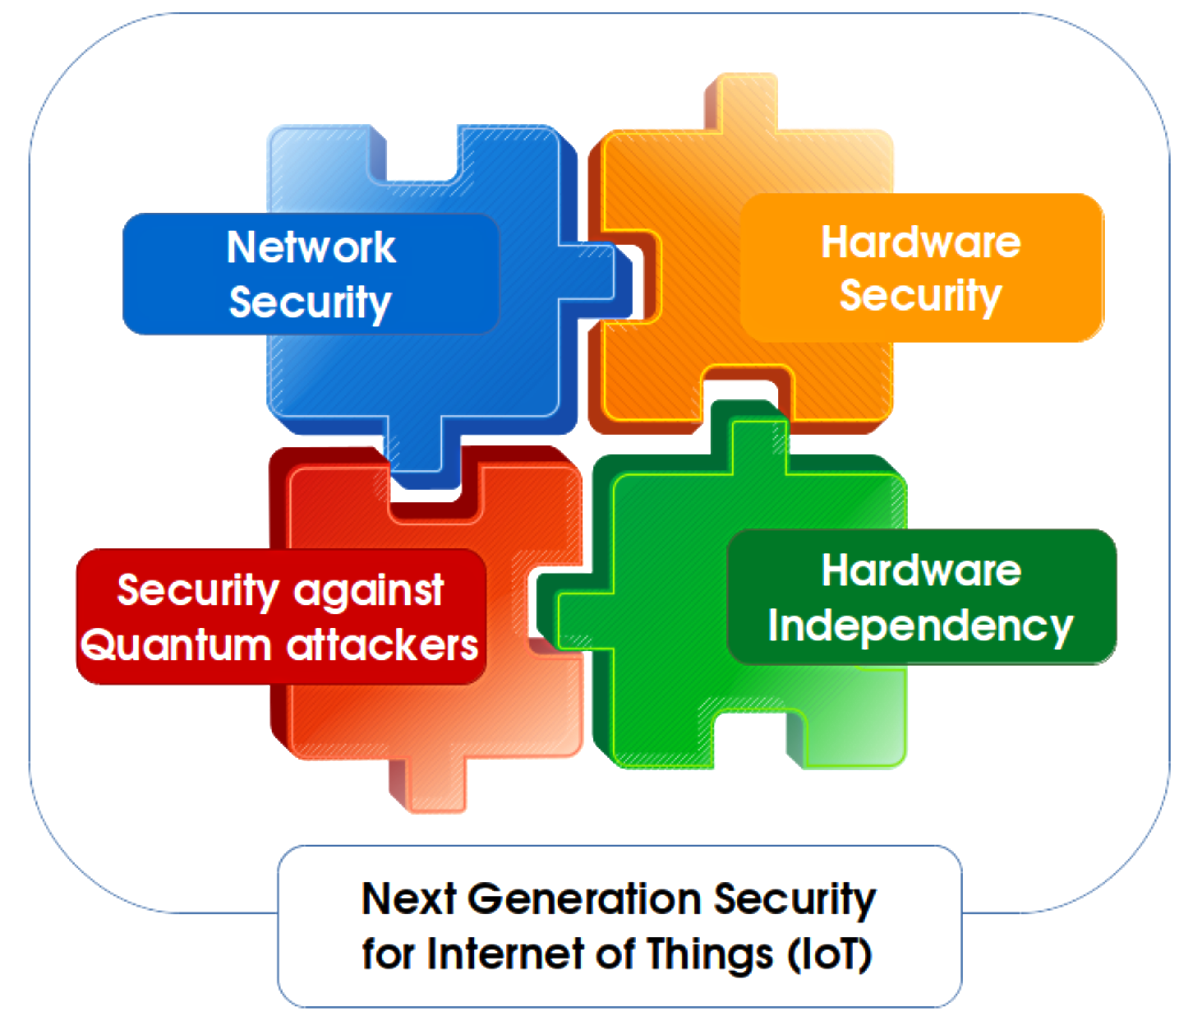 Computer science: Post-quantum cryptography and security for Internet of Things